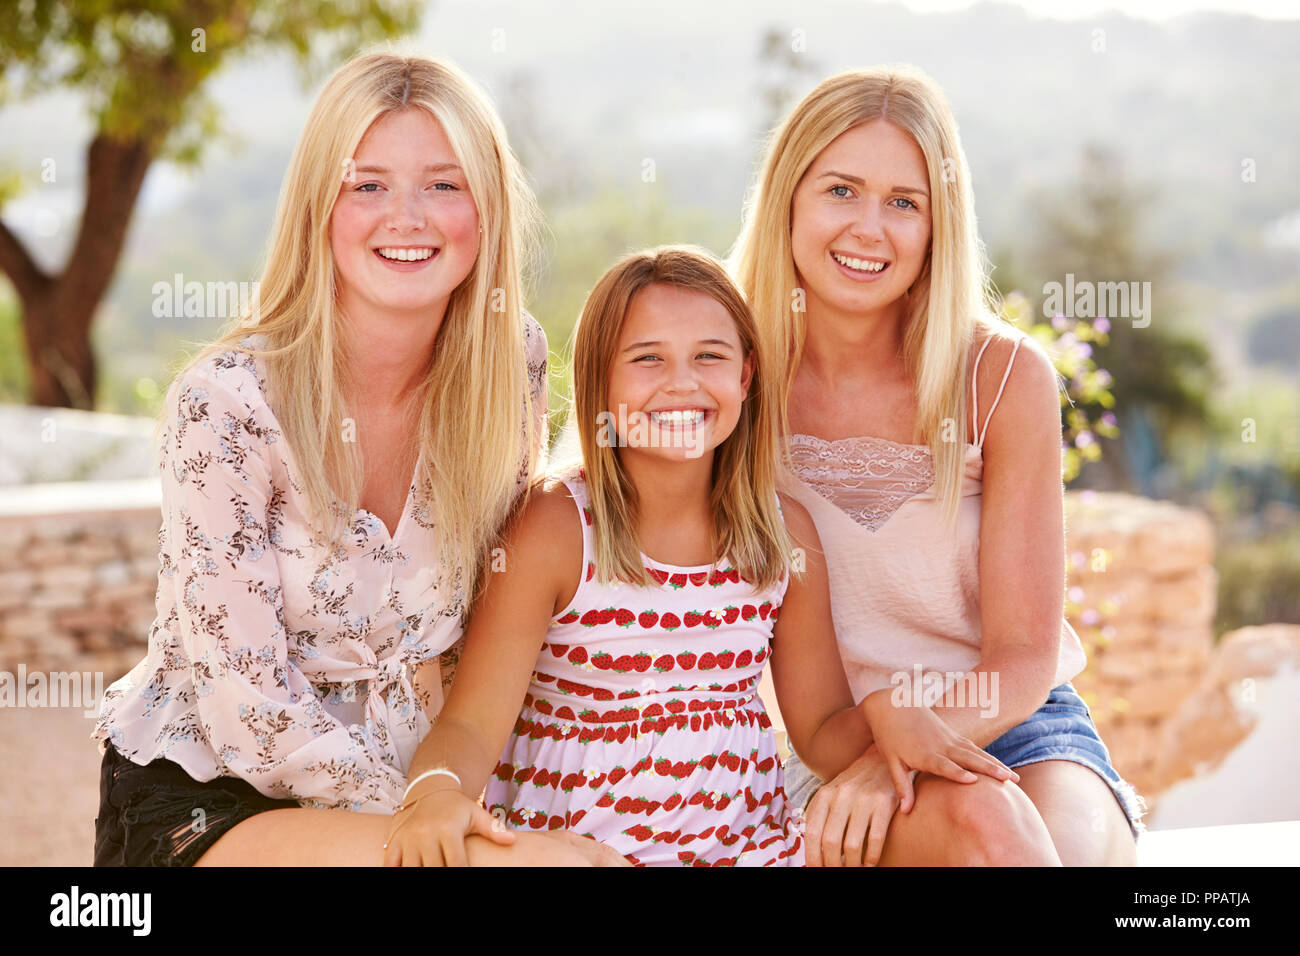 Portrait Of Three Sisters Having Fun On Holiday Together - Stock Image